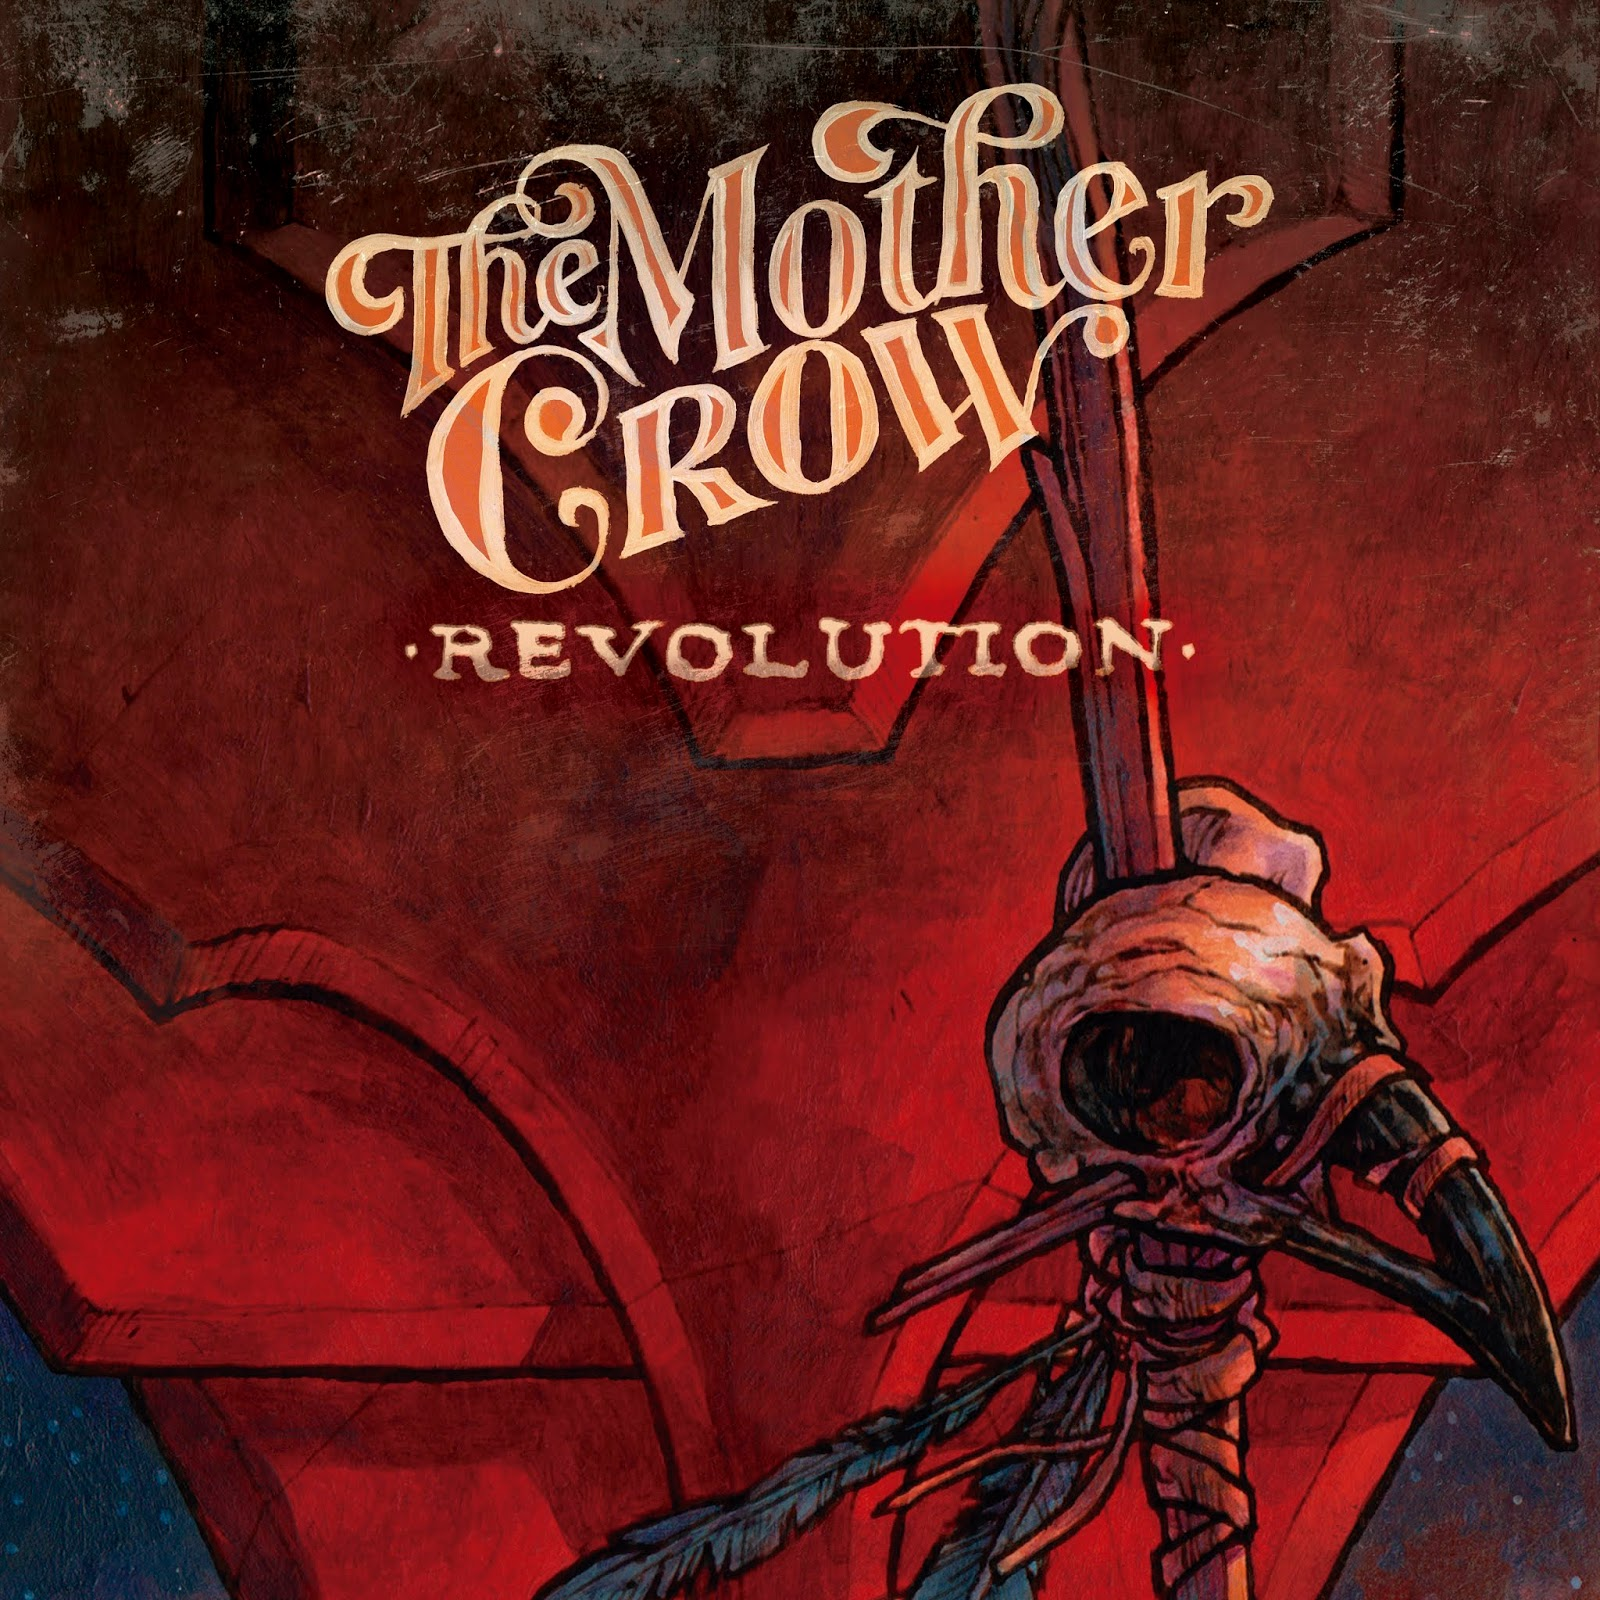 The mother crow Revolution